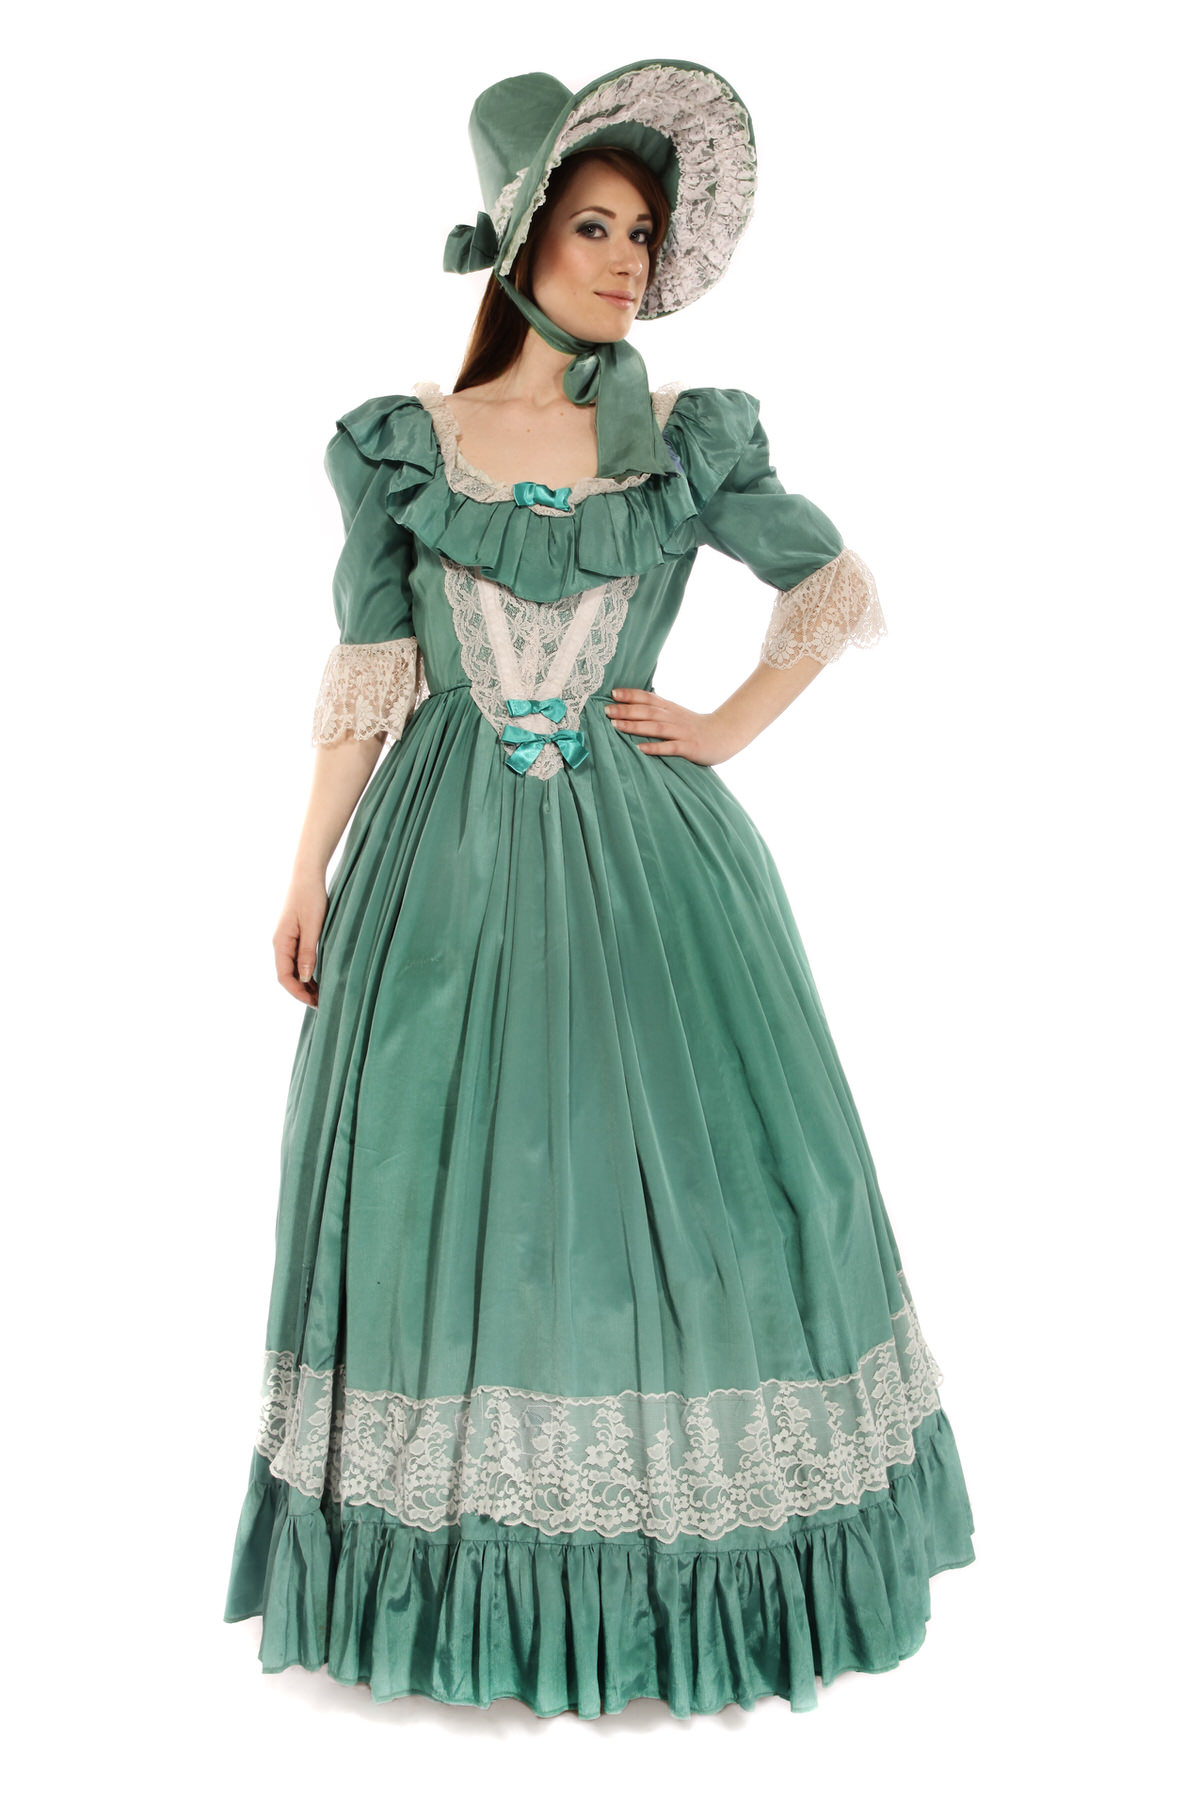 GEORGIAN GREEN DRESS COSTUME W MATCHING HAT